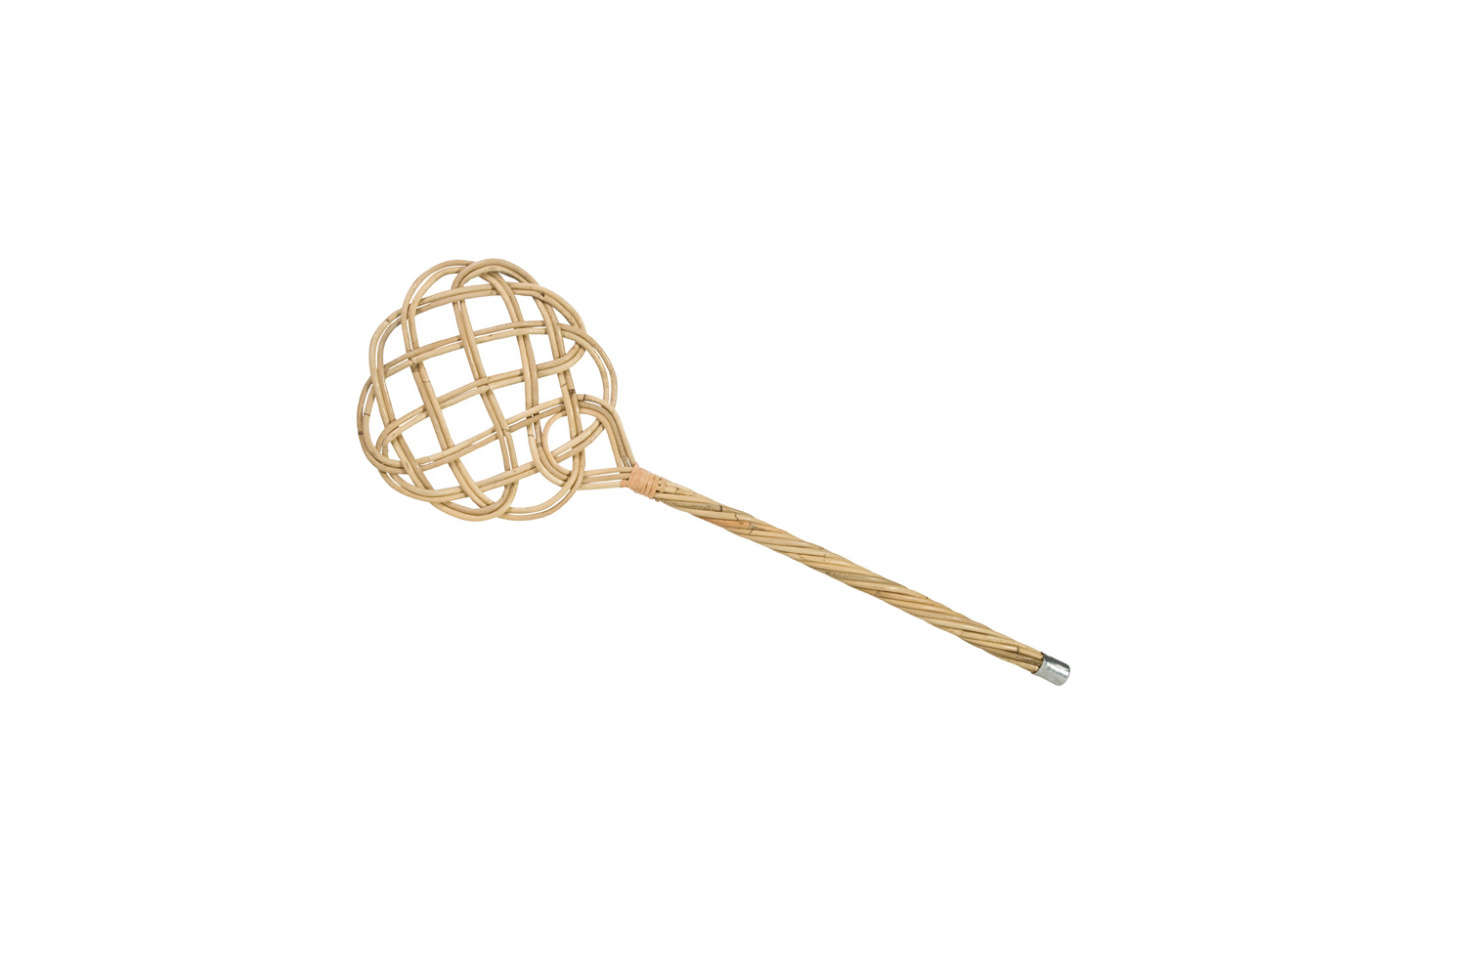 Another winner from Redecker, the Rattan Reed Carpet Beater is the only beautiful way to get dust out of carpets. It's also good for the sofa, for chair cushions, or poufs; $30.99 on Amazon Prime.